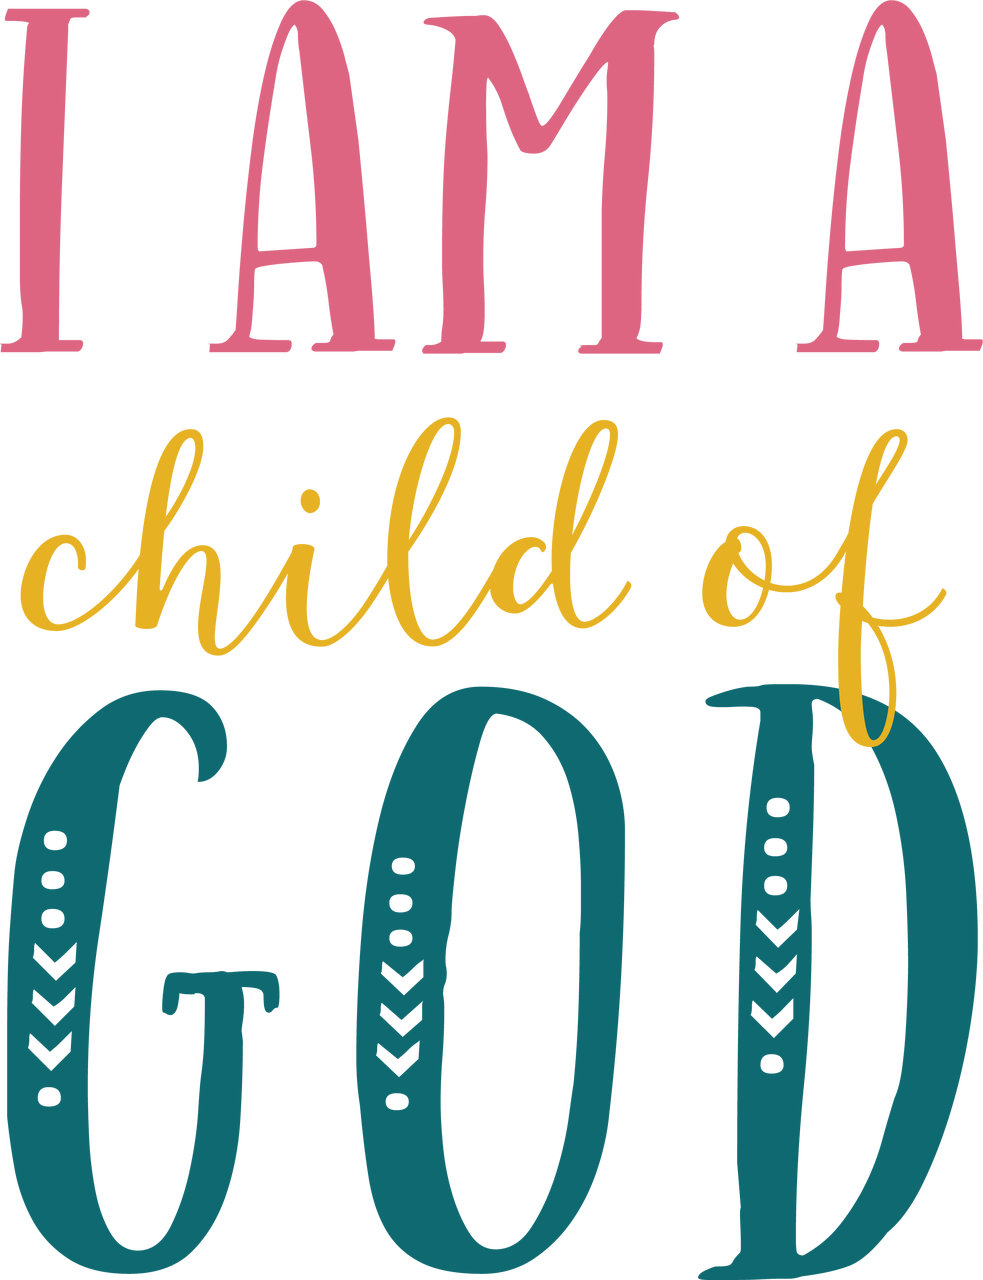 I Am A Child Of God Png Free I Am A Child Of God Png Transparent Images 88787 Pngio